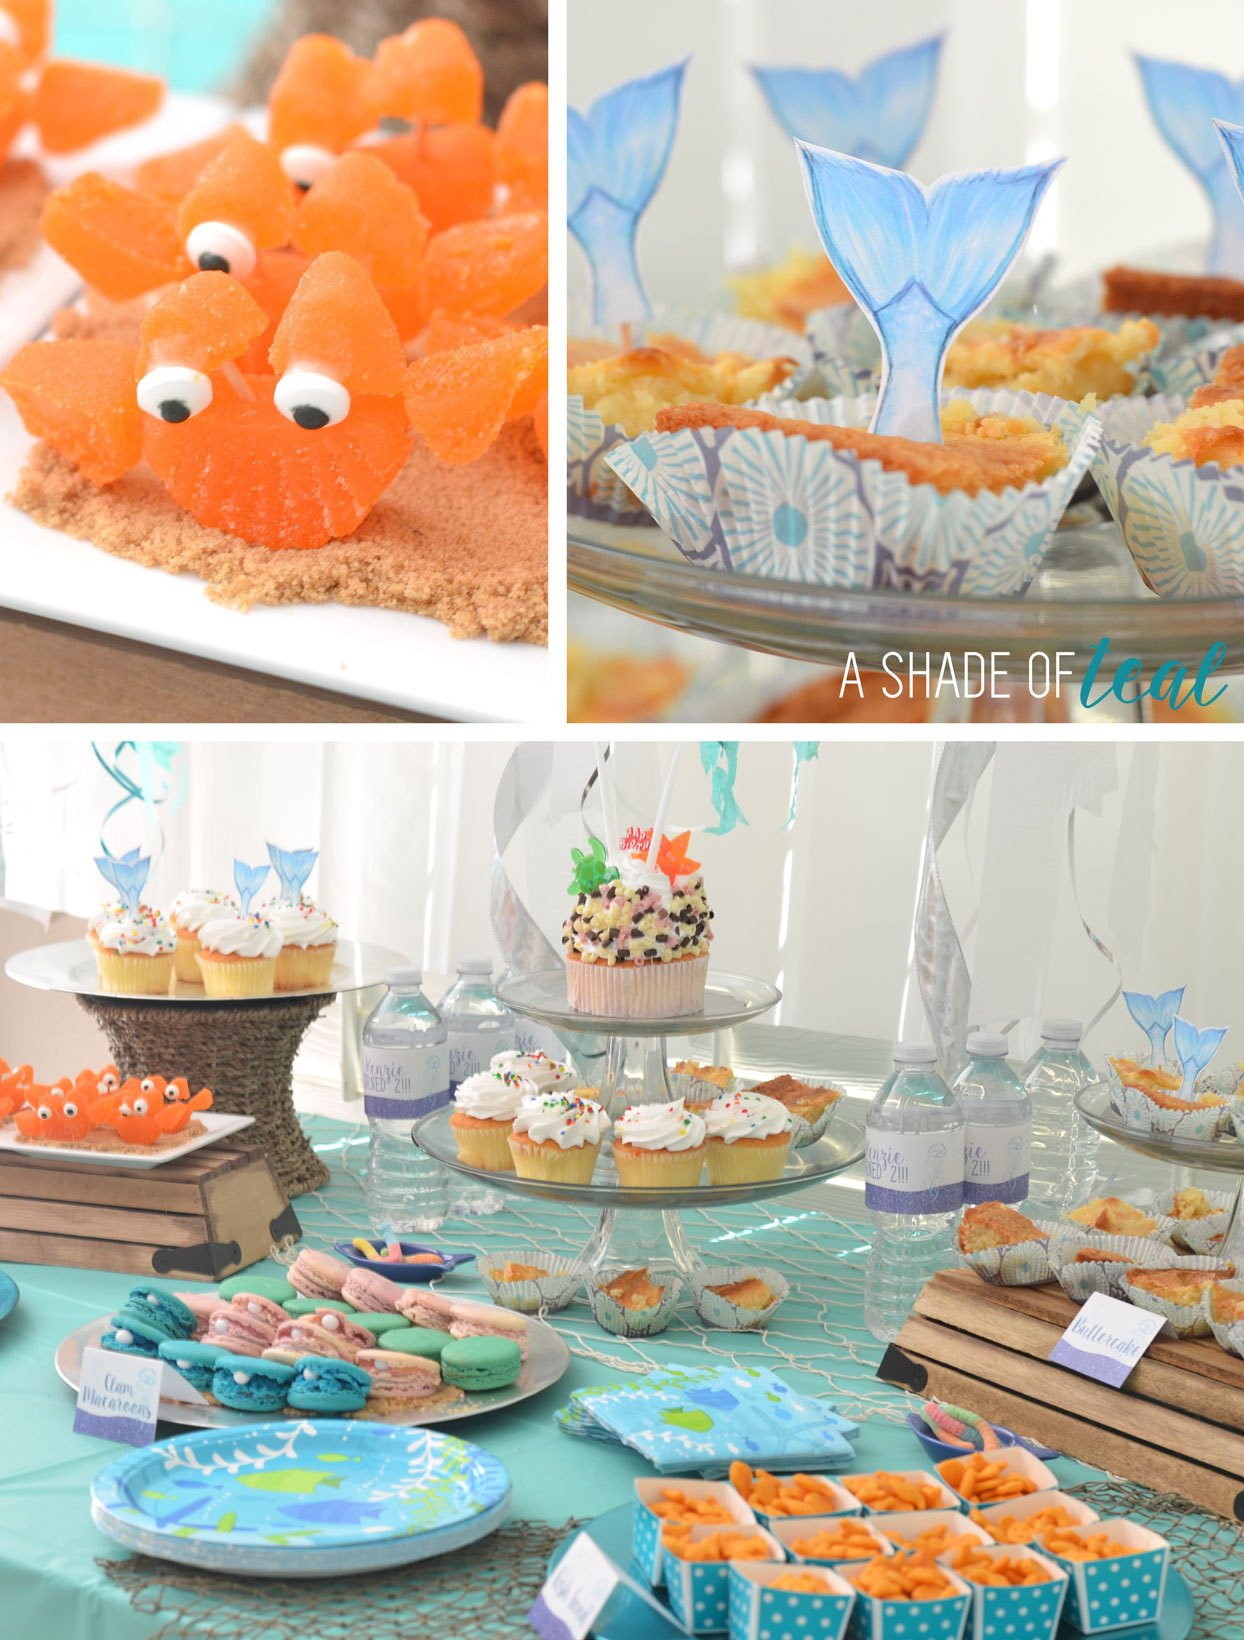 Best ideas about Under The Sea Birthday Party . Save or Pin Under the Sea 2nd Birthday Party Now.